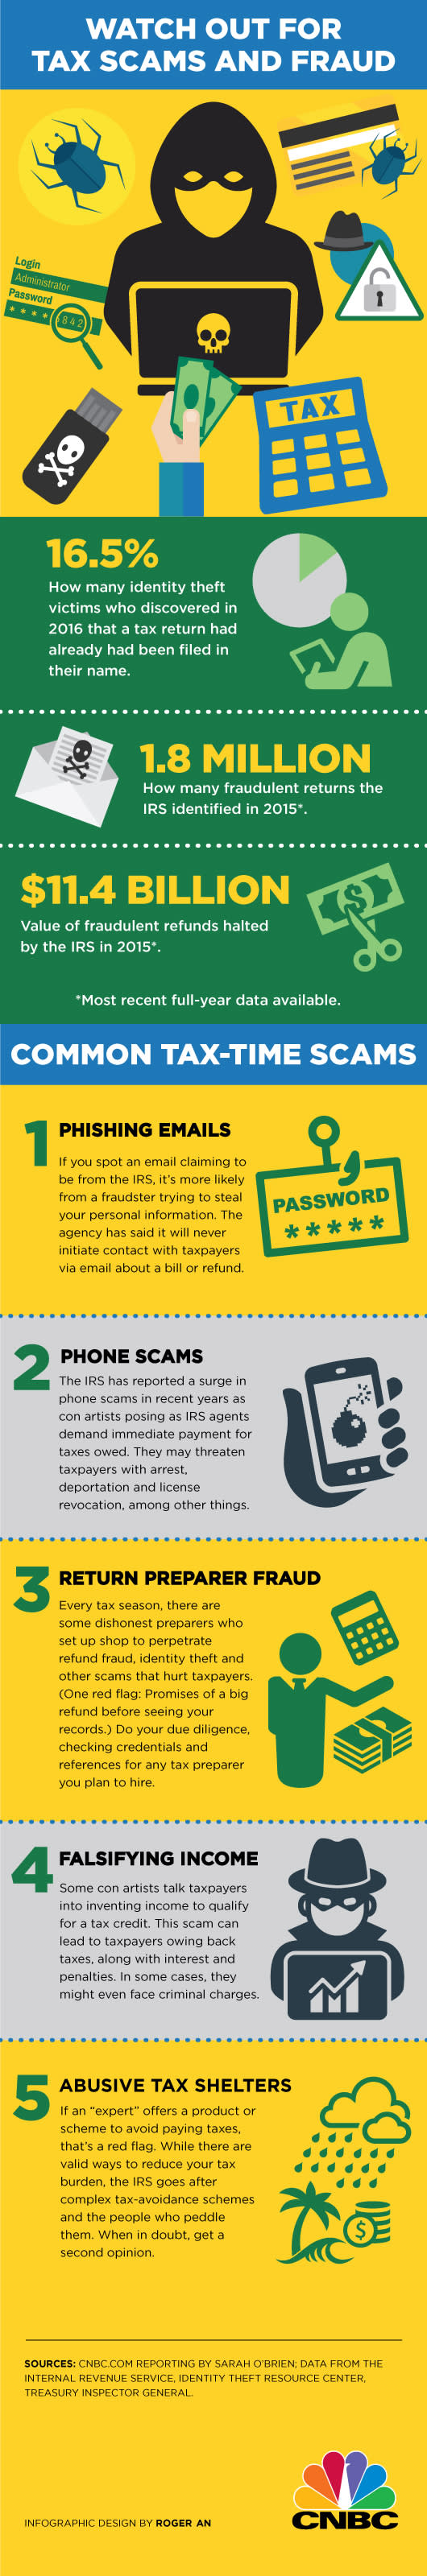 Tax fraud and scams INFOGRAPHIC